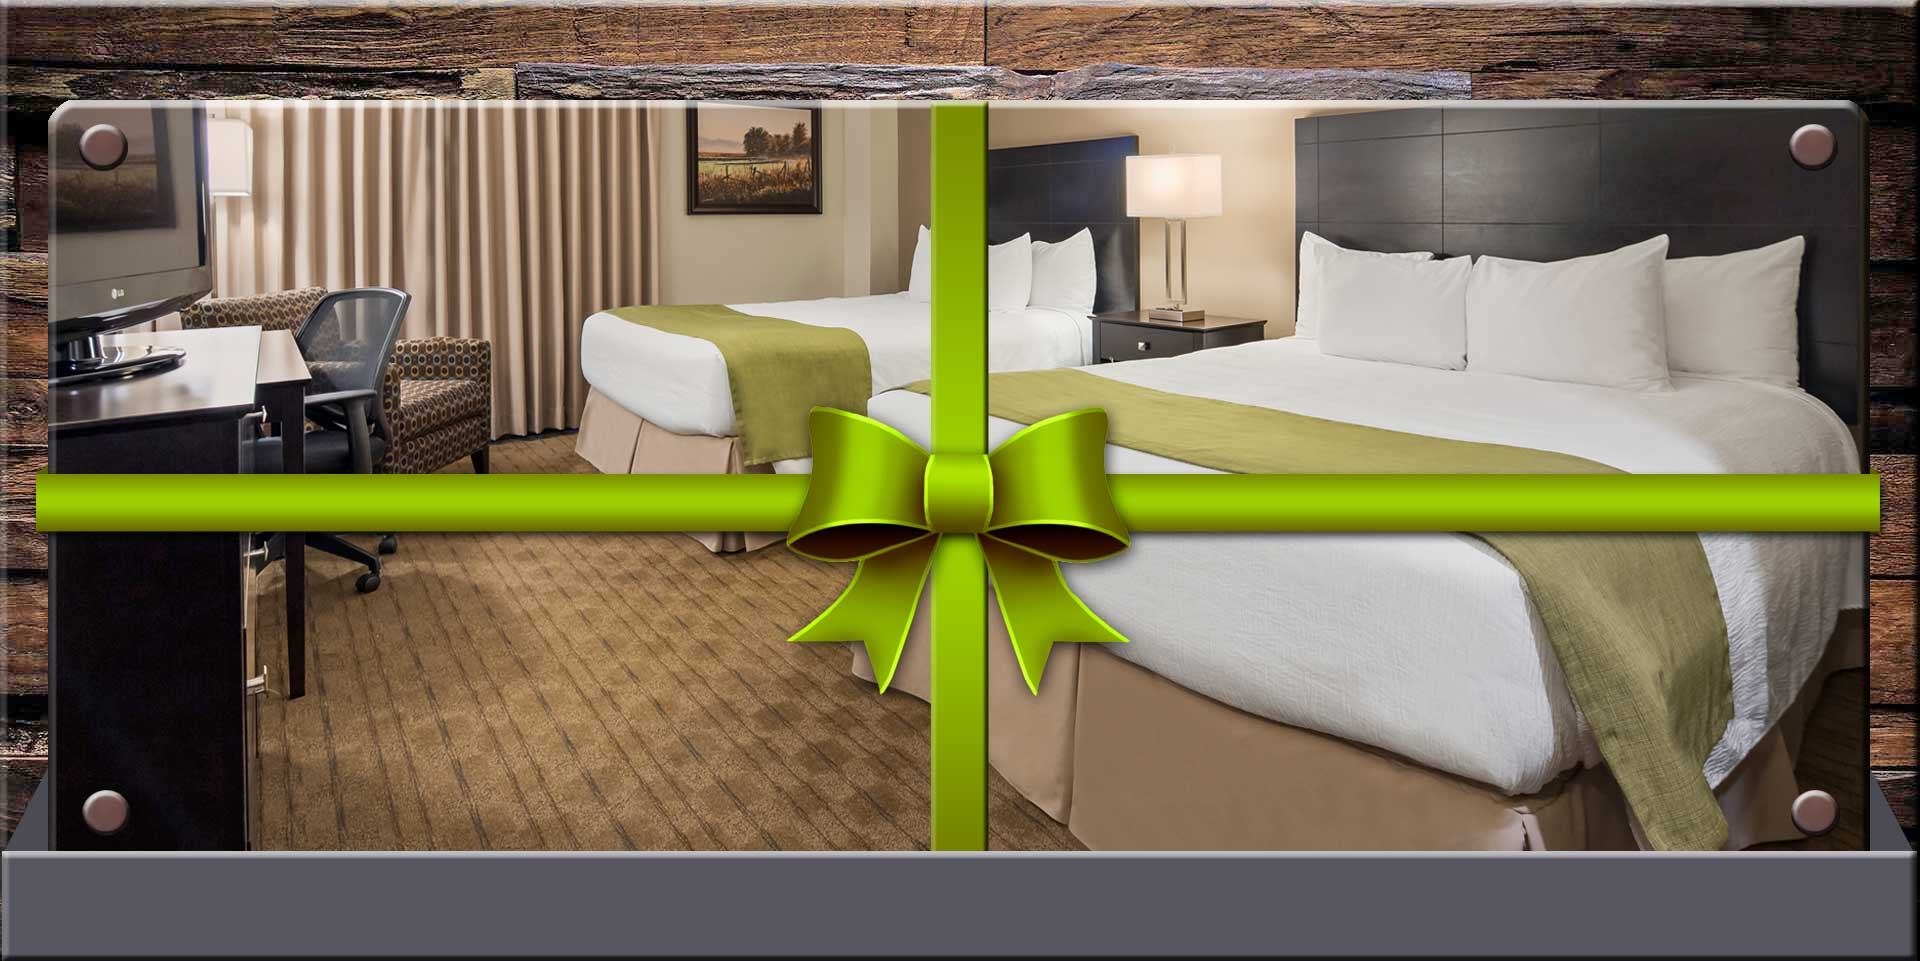 Holiday Savings on Hotel Rooms